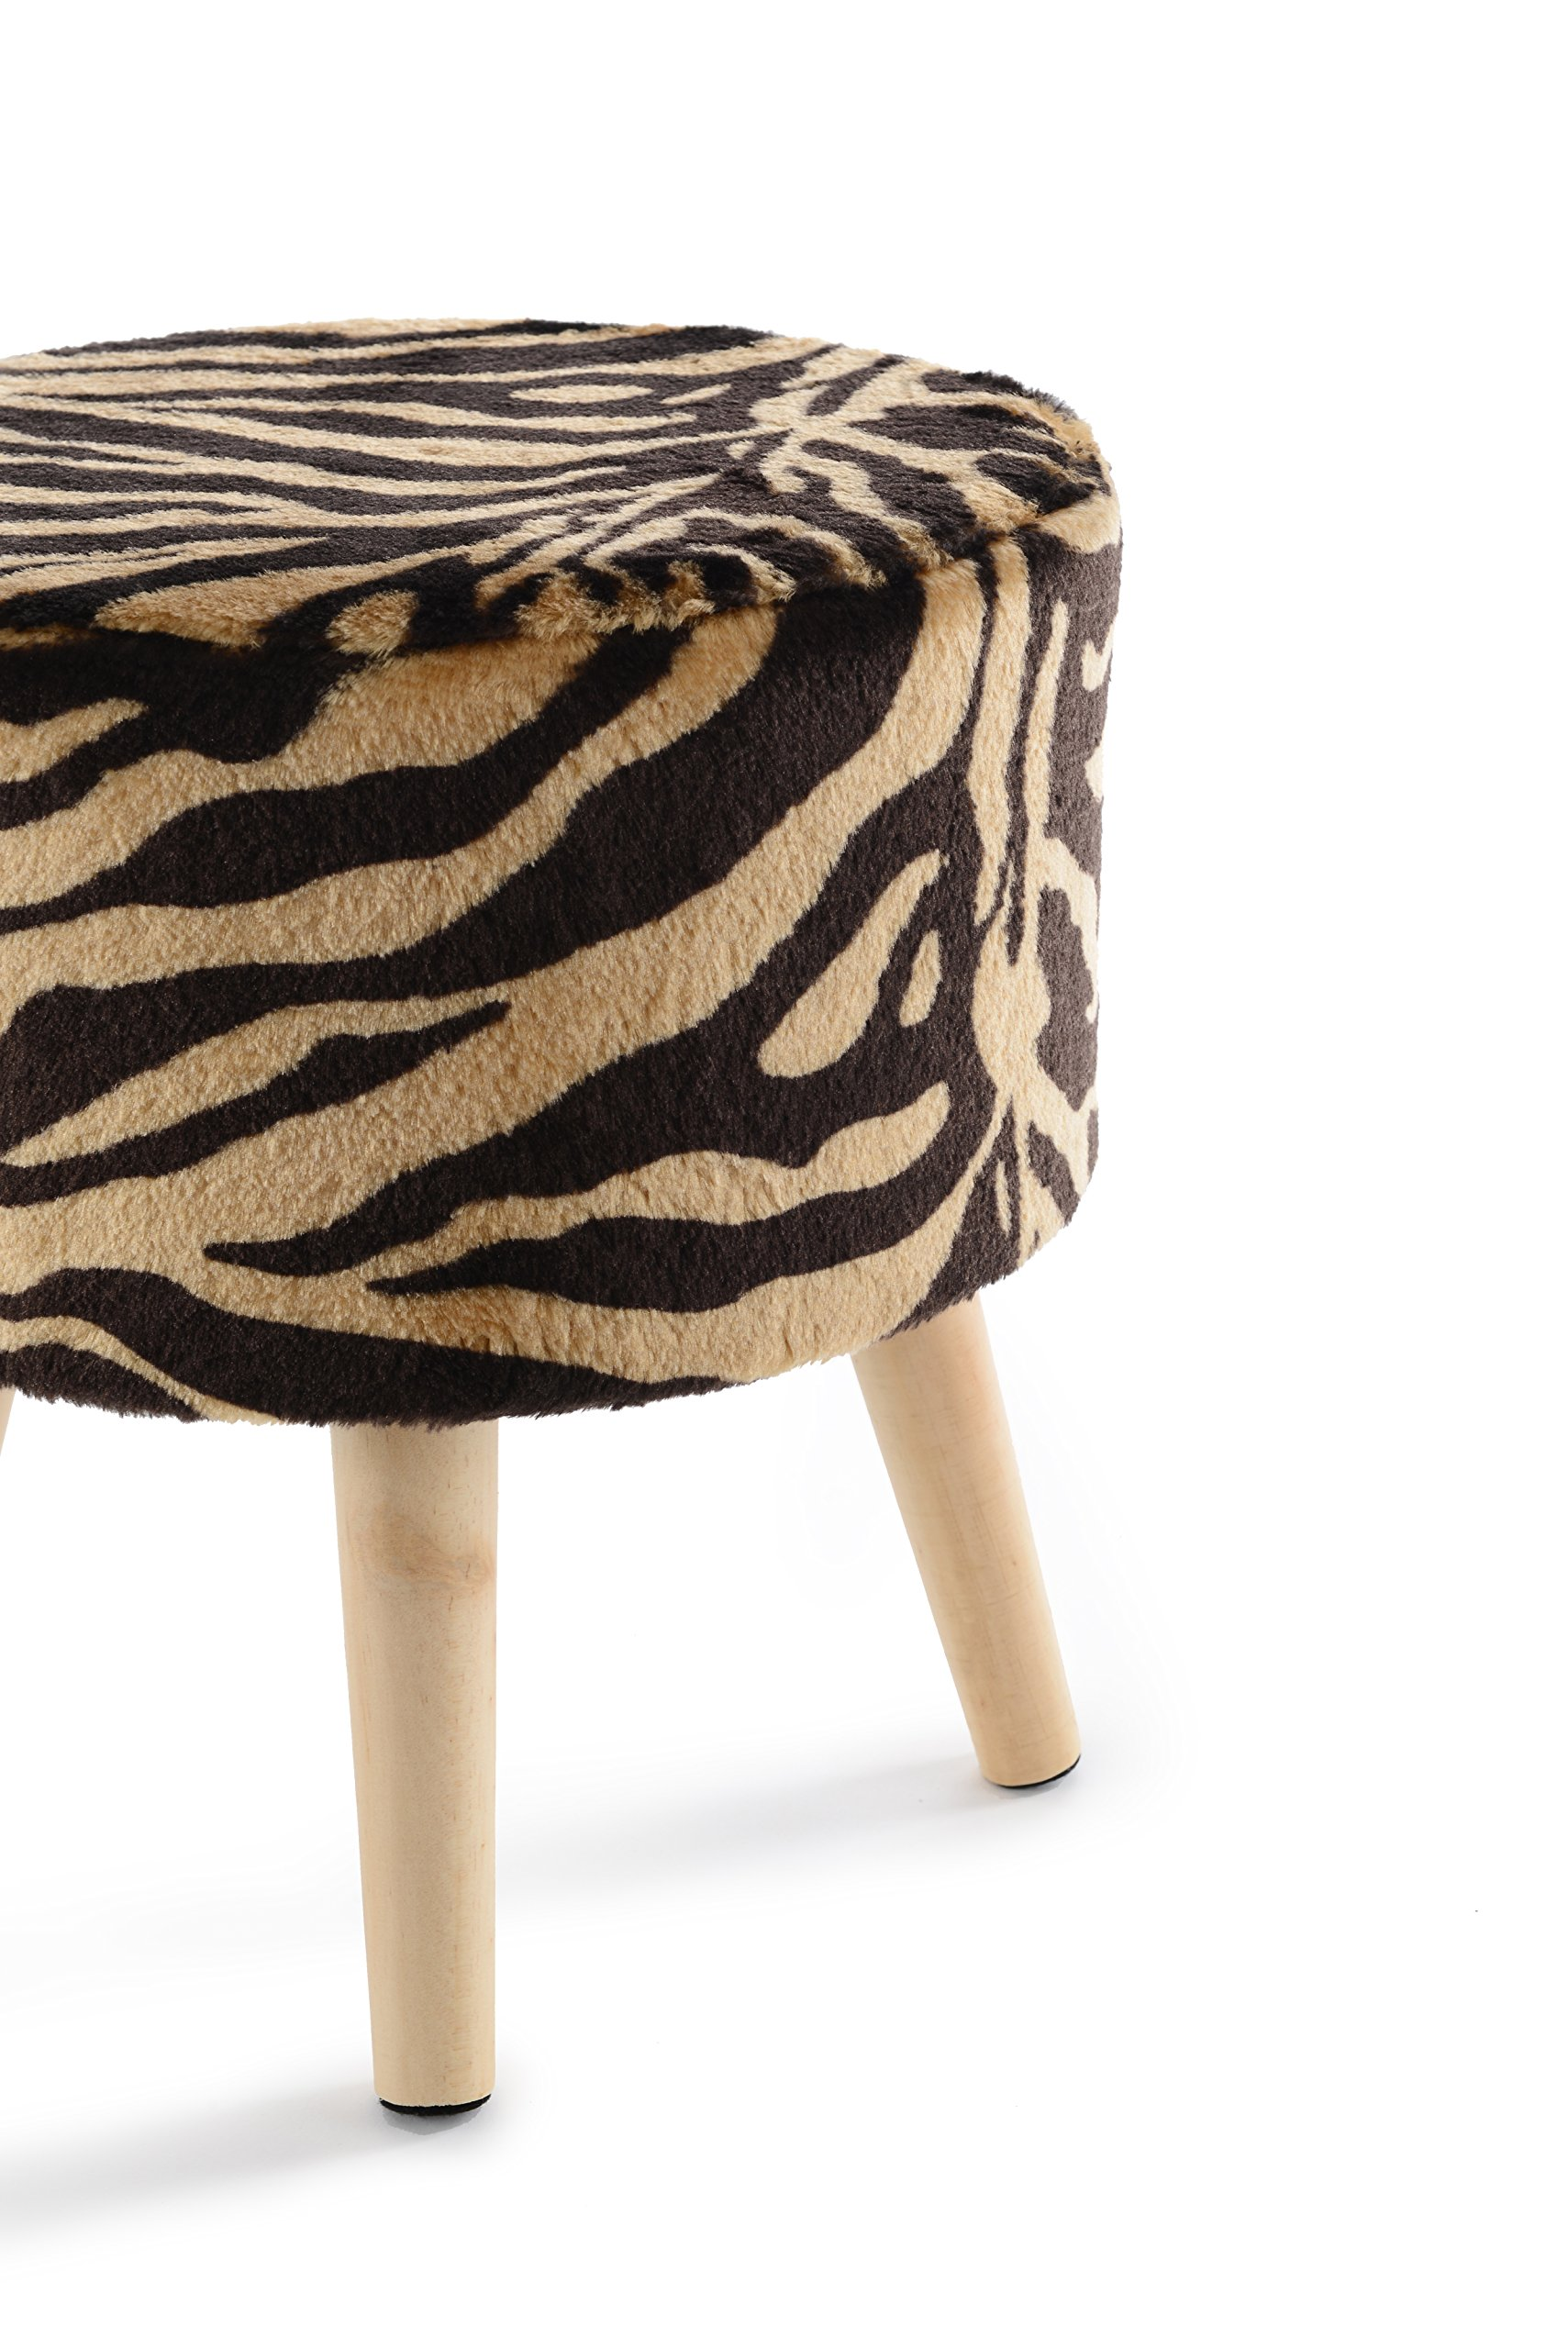 Cheer Collection 13'' Round Ottoman | Super Soft Decorative Tiger Print Faux Fur Foot Stool with Wood Legs by Cheer Collection (Image #9)